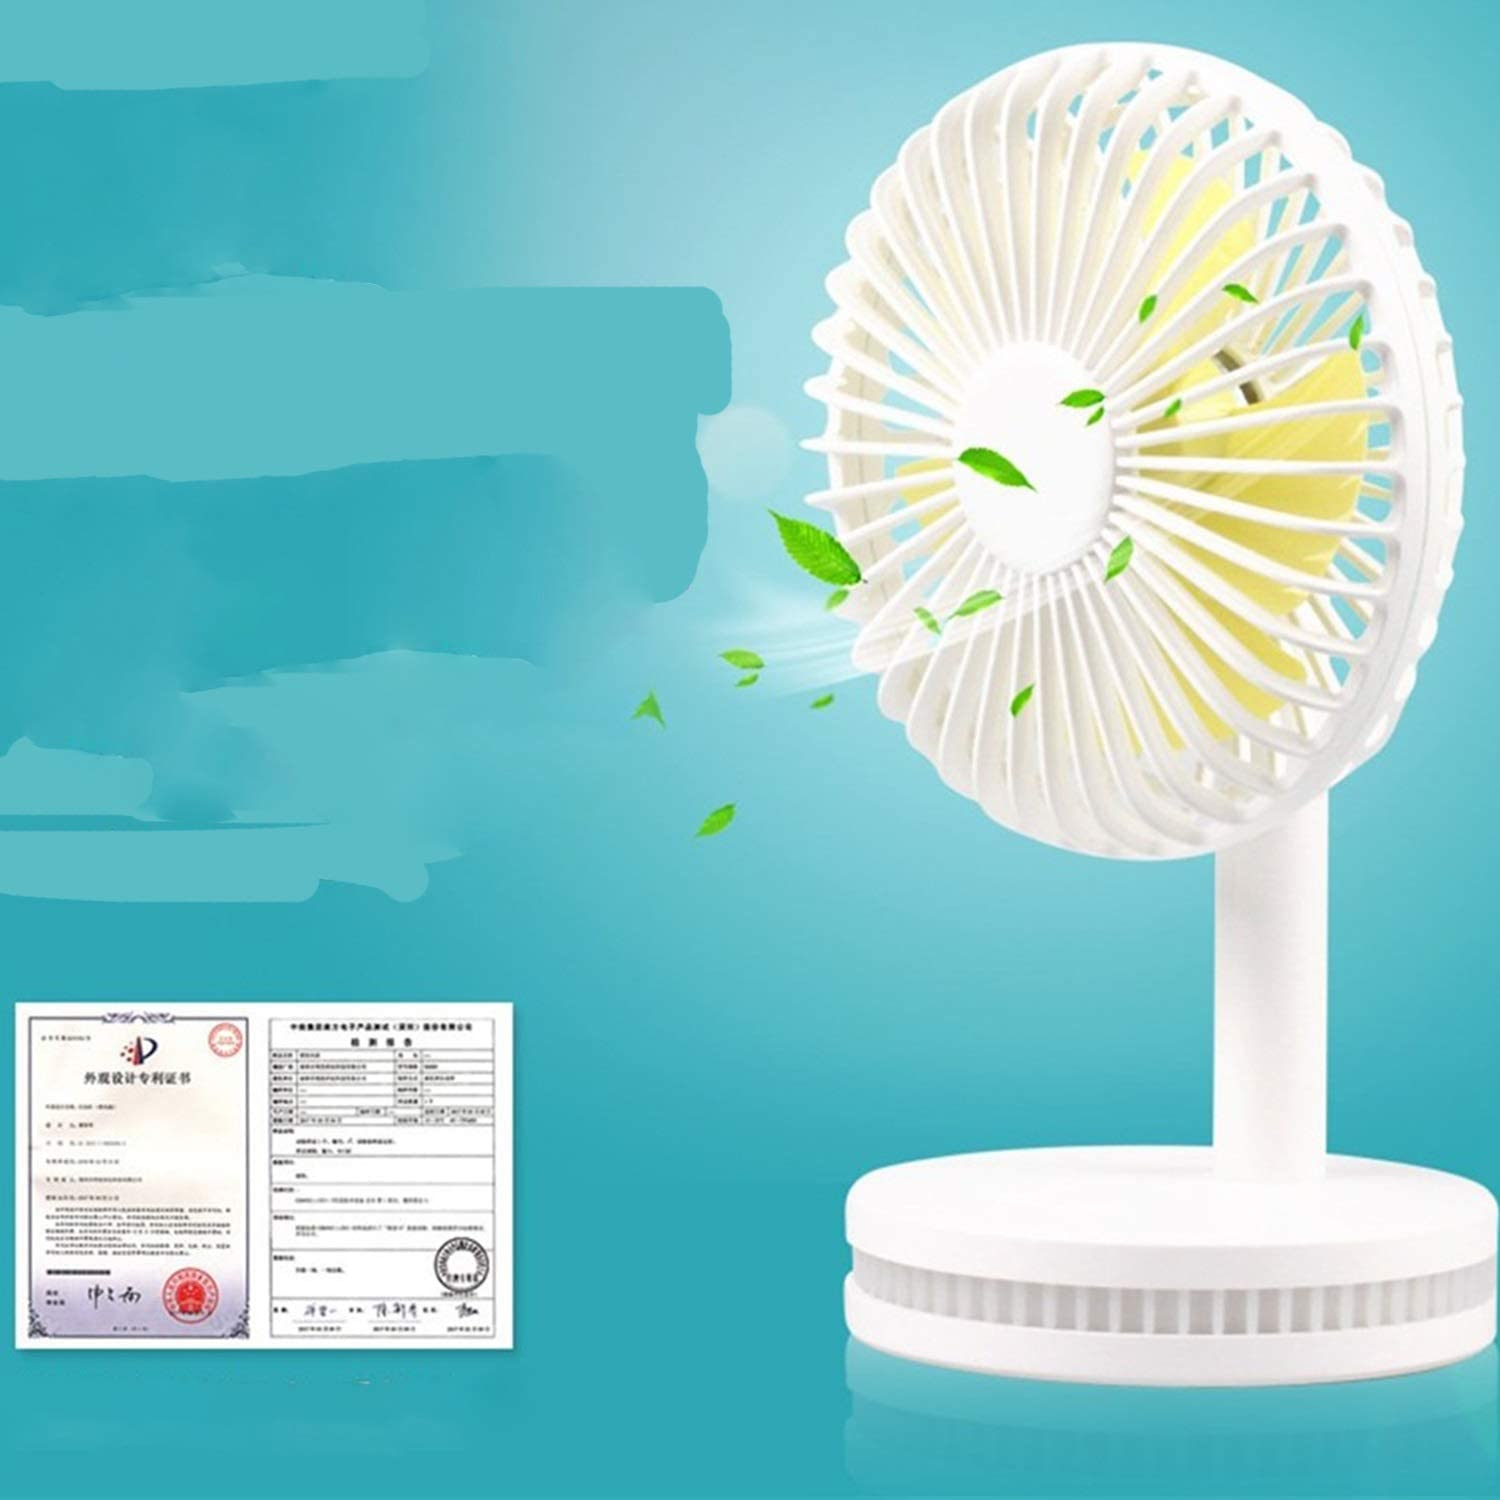 Outdoor Travel Shengjuanfeng USB Fans Fashion Fan Night Light Handheld Charging Table Small Fan Mini Portable USB Electric Fan for Home Office Color : Blue